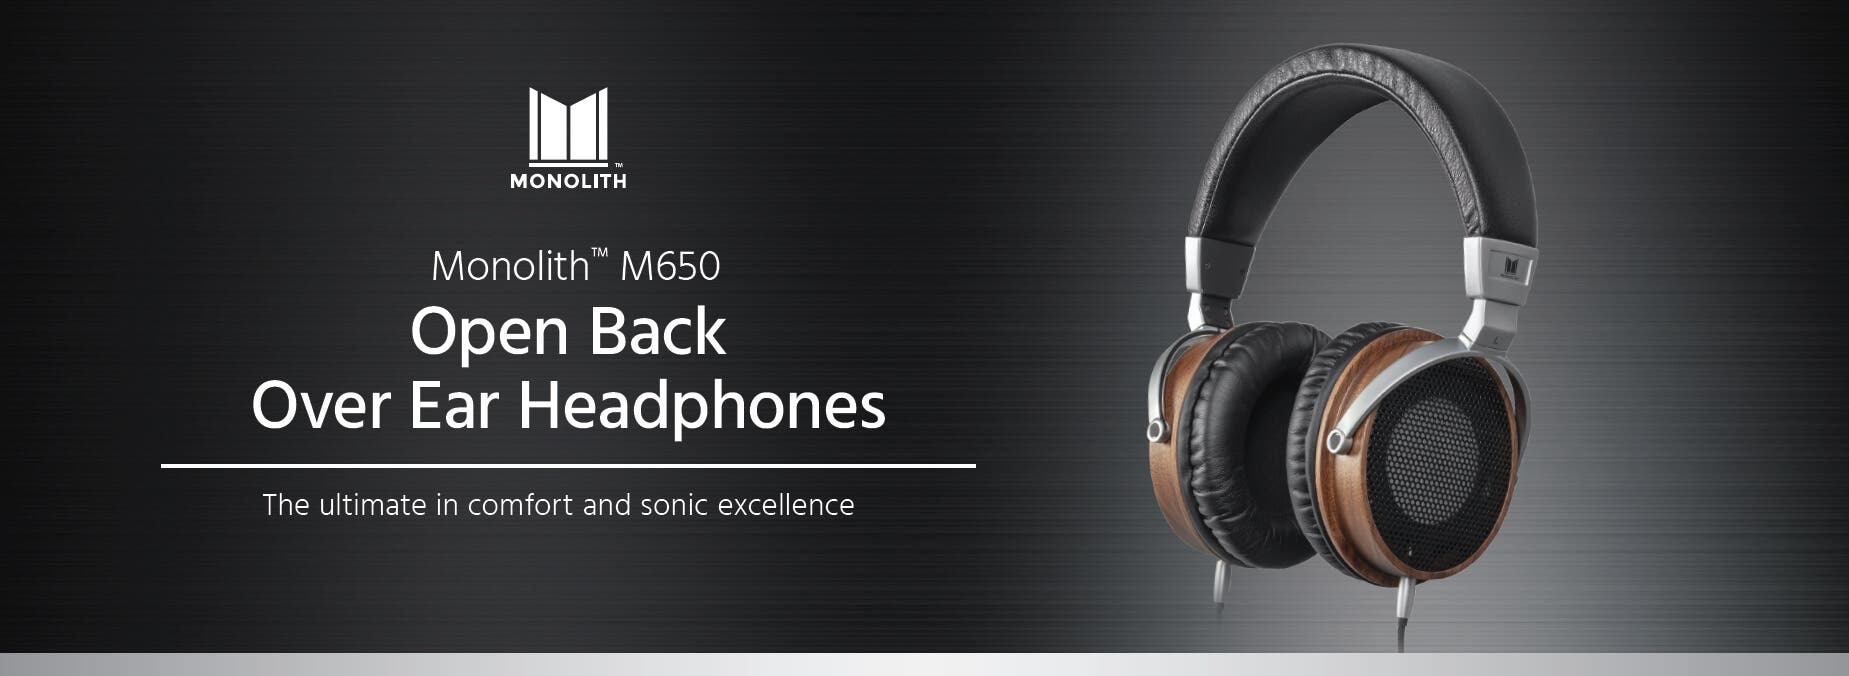 M650 Headphones